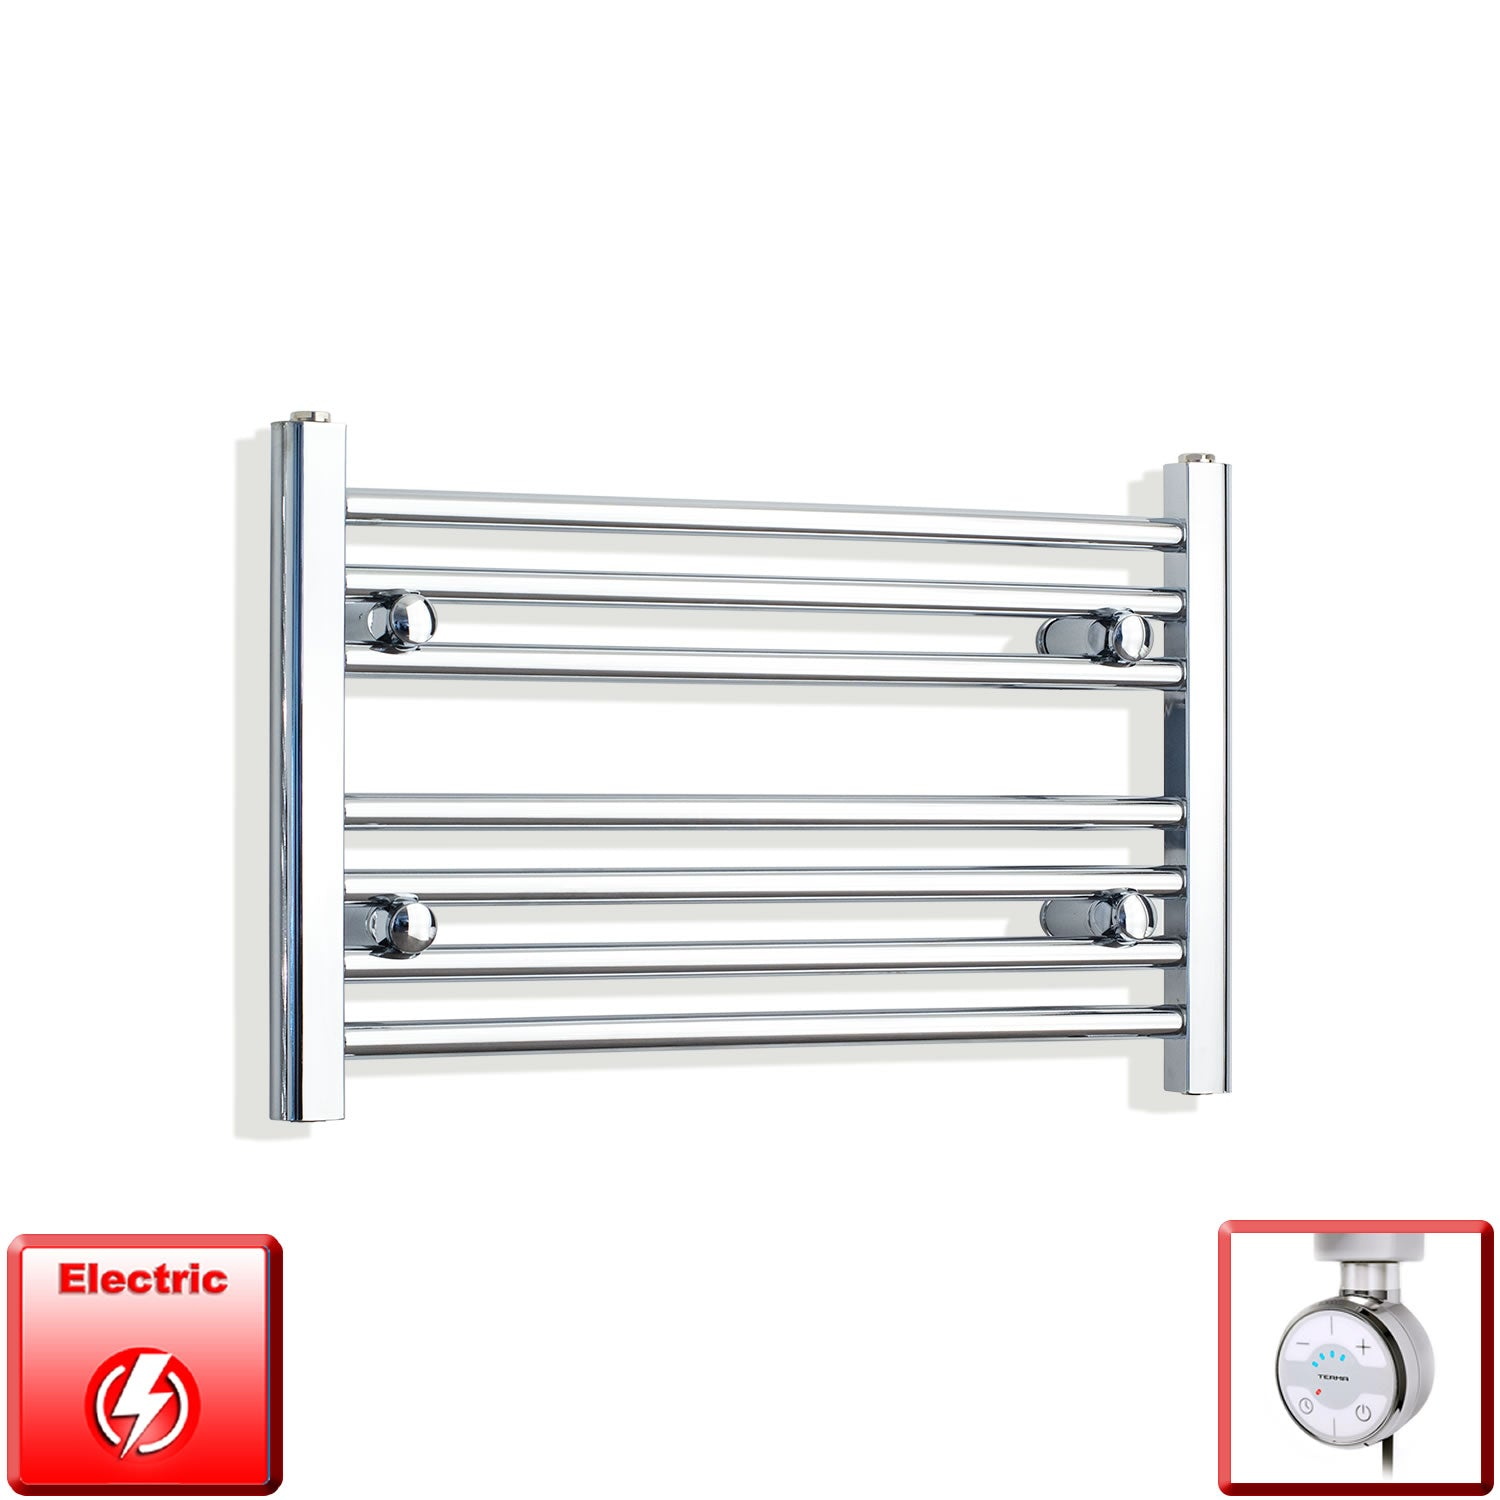 850mm Wide 400mm High Flat Chrome Pre-Filled Electric Heated Towel Rail Radiator HTR,MOA Thermostatic Element